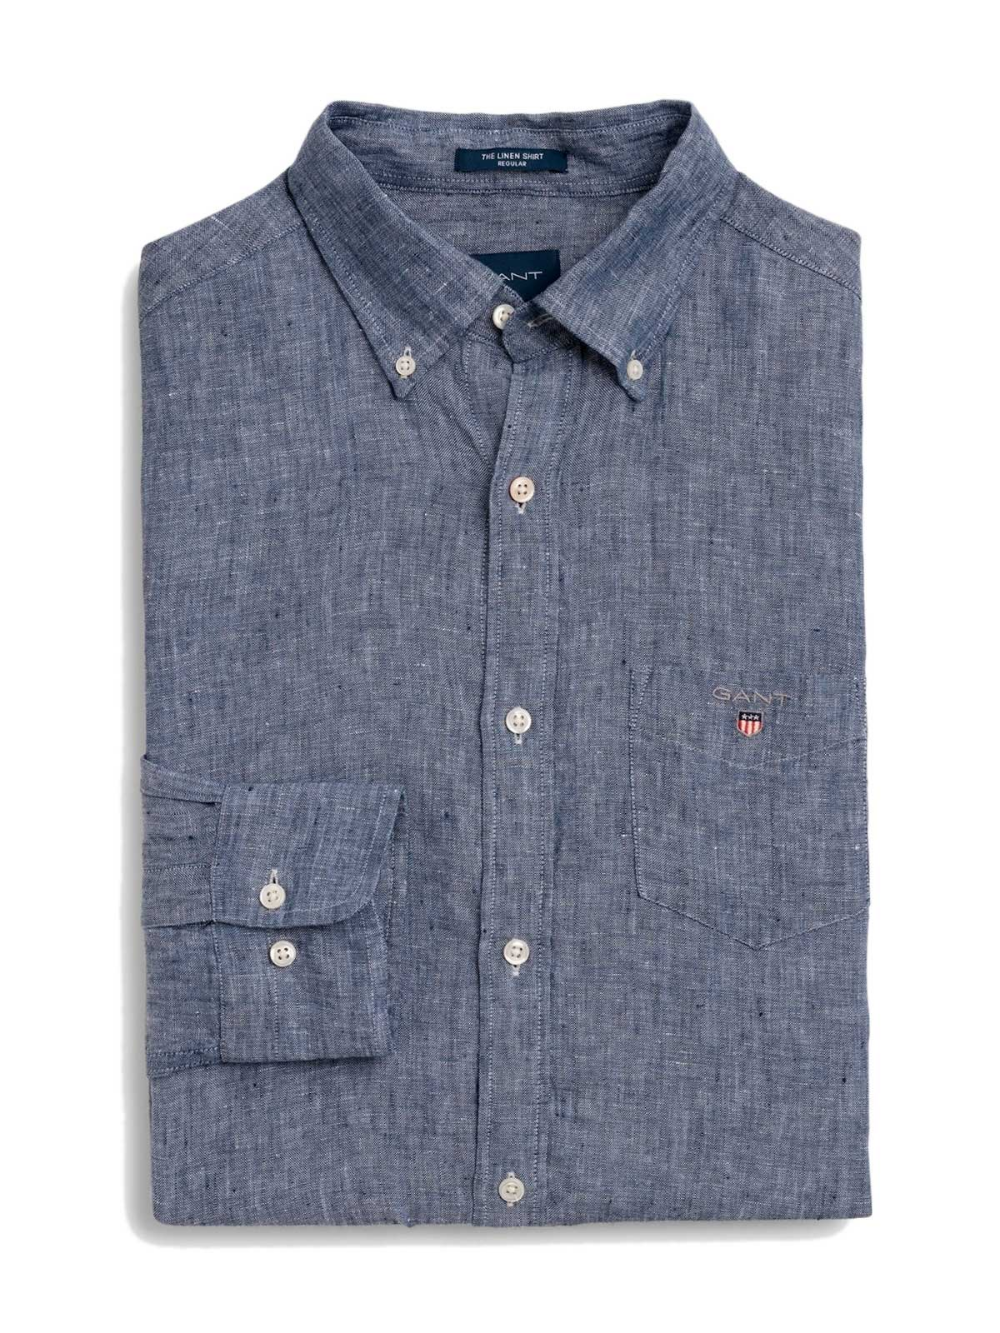 Our Indigo Ed Shirt In 100 Cotton Features A Slim Fit On Down Collar Contrasting Neck Tape An Allover Subtle Pattern Single Chest